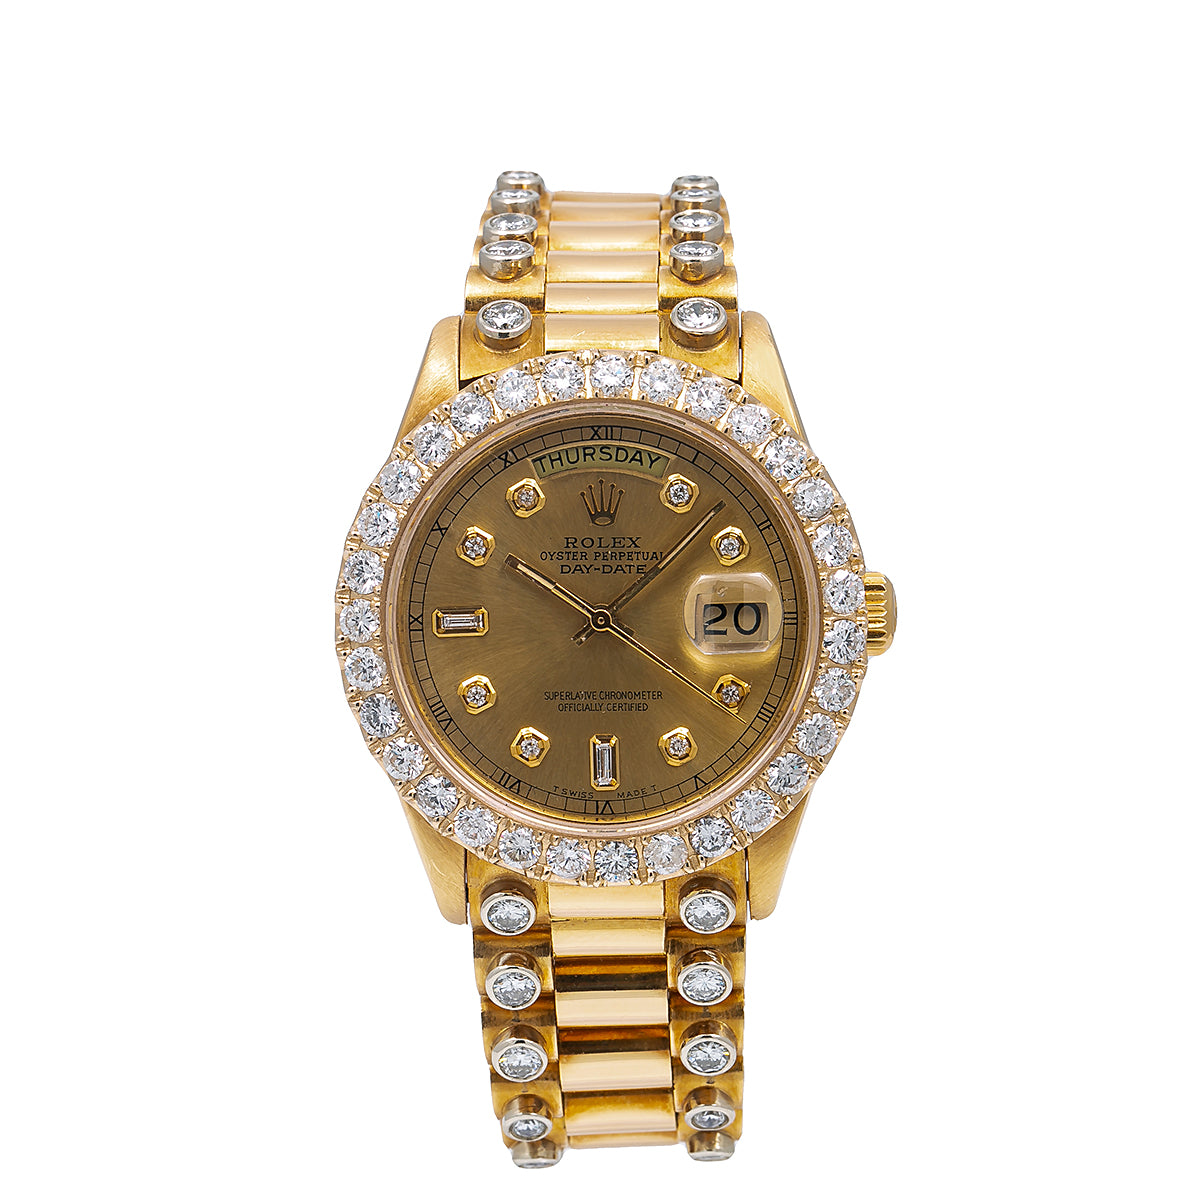 Rolex Day-Date Diamond Watch, 18038 36mm, Champagne Diamond Dial With 5.25 CT Diamonds